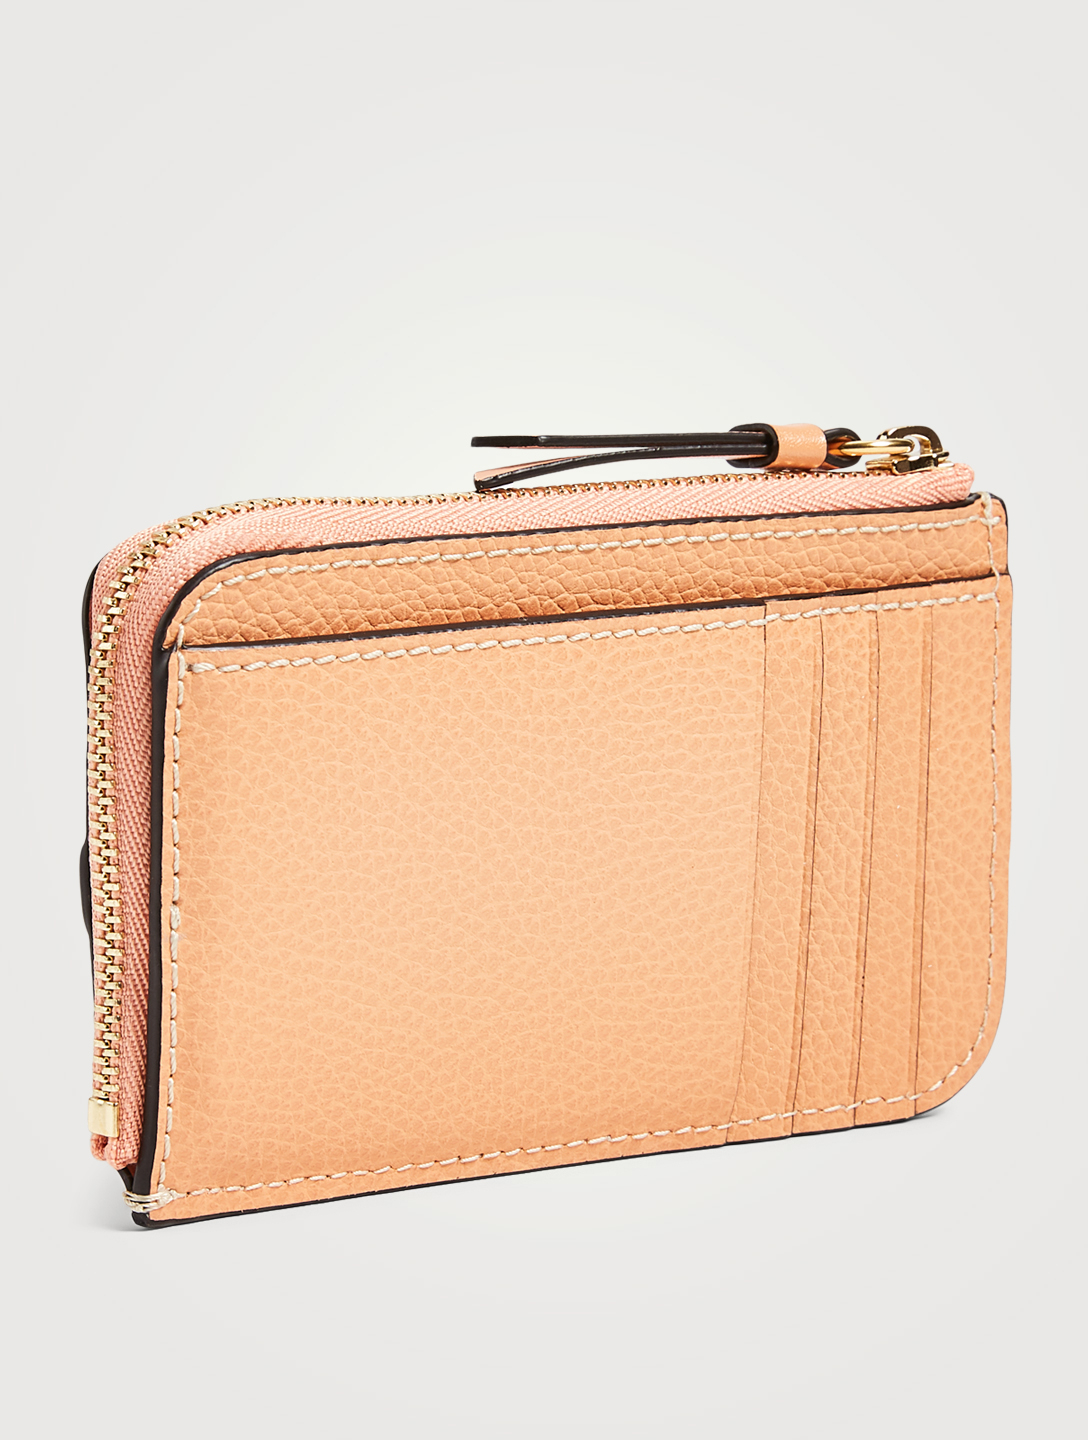 CHLOÉ Small Darryl Leather Card Holder Women's Orange